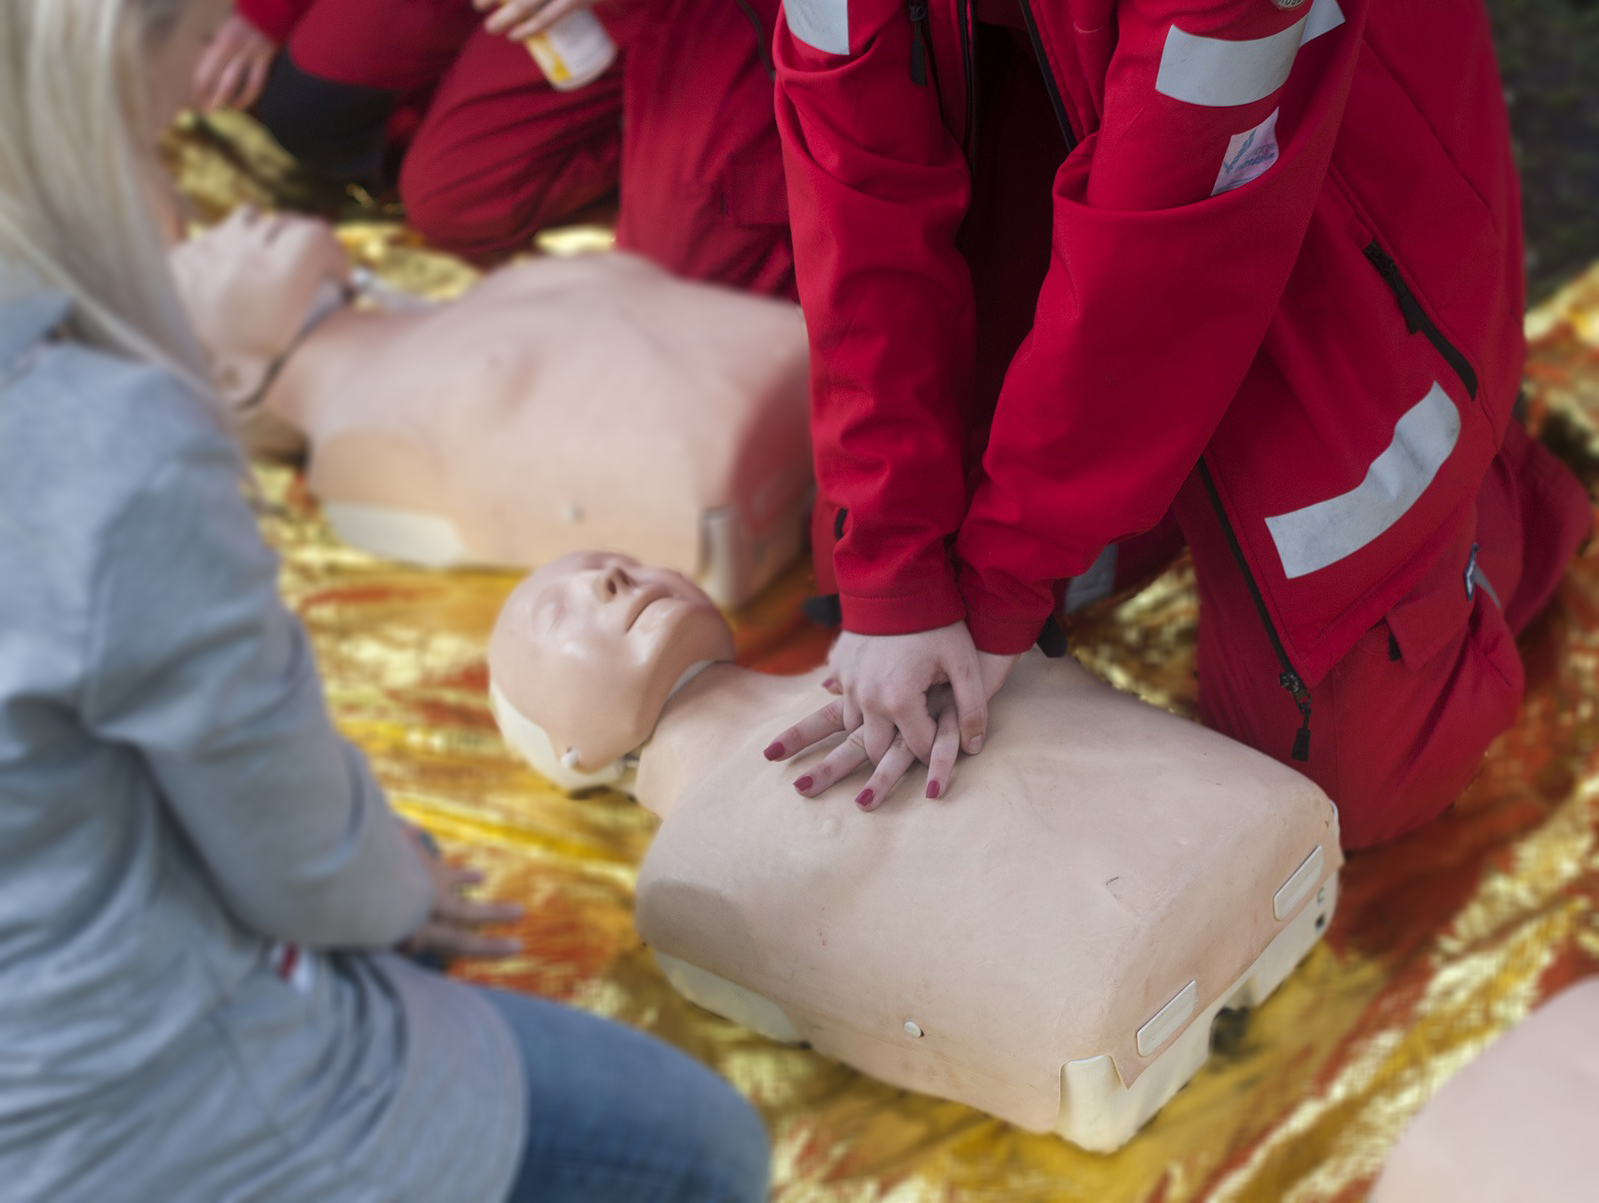 FIRST AID CERTIFICATIONS - BridgingWorx now provides FIRST AID Certifications at our training centre in Keilor East.We have courses in First Aid Level 2 (Provide First Aid HLTAID003) available for enrolment.- Enrol now and pay only $120- Get Certified in ONE DAY!- Regular Intakes- NO administration fees-INTERESTED? Send an email to fisi@bridgingworx.org.au with 'FIRST AID' in the subject line to find out about upcoming course intake dates.